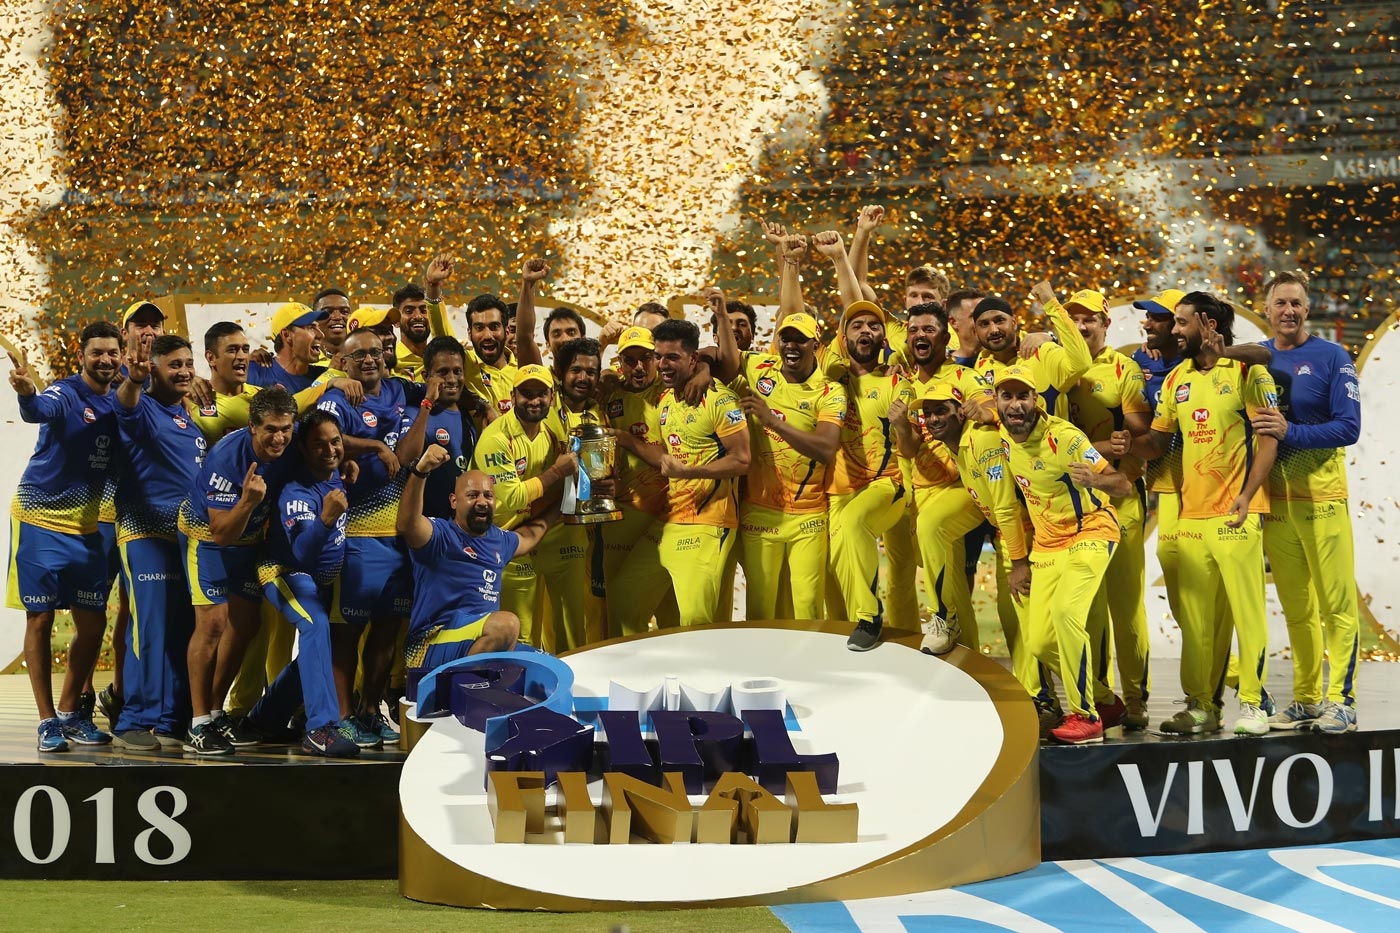 IPL 12 Auction To Be Held On December 16 In Goa: Report 1